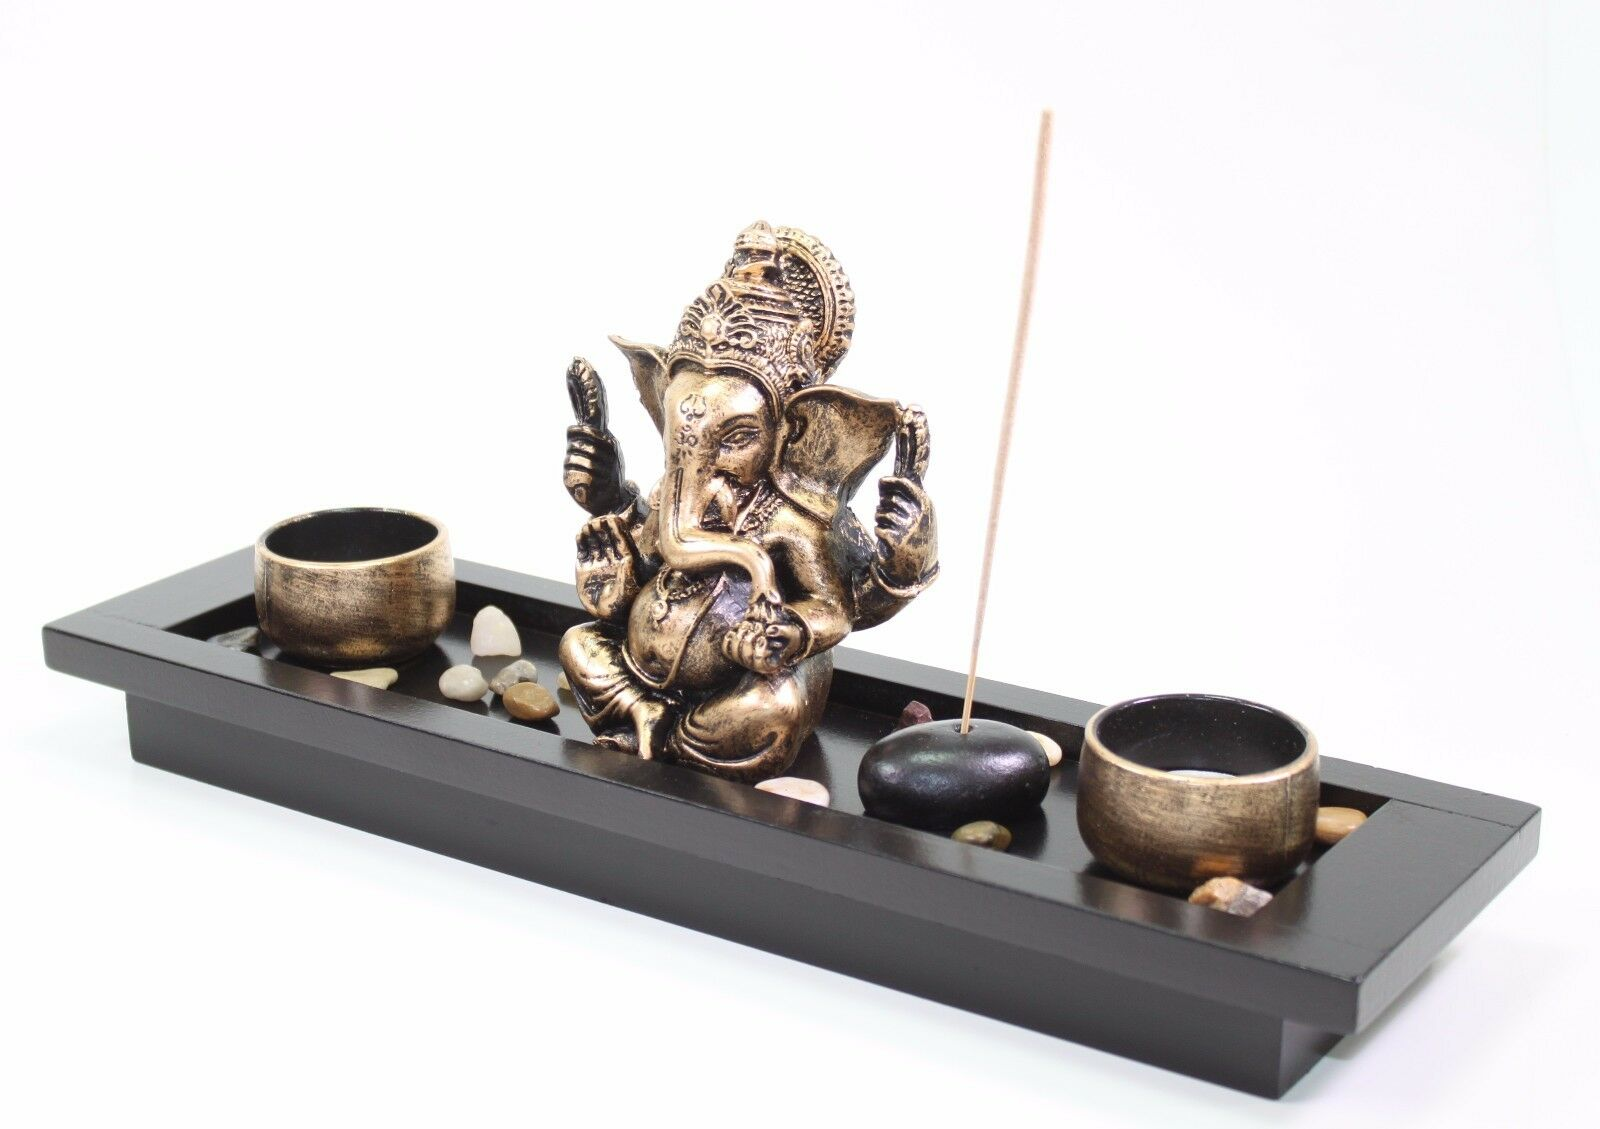 Elephant ganesha zen rocks incense burner candle holder for Home decor zen